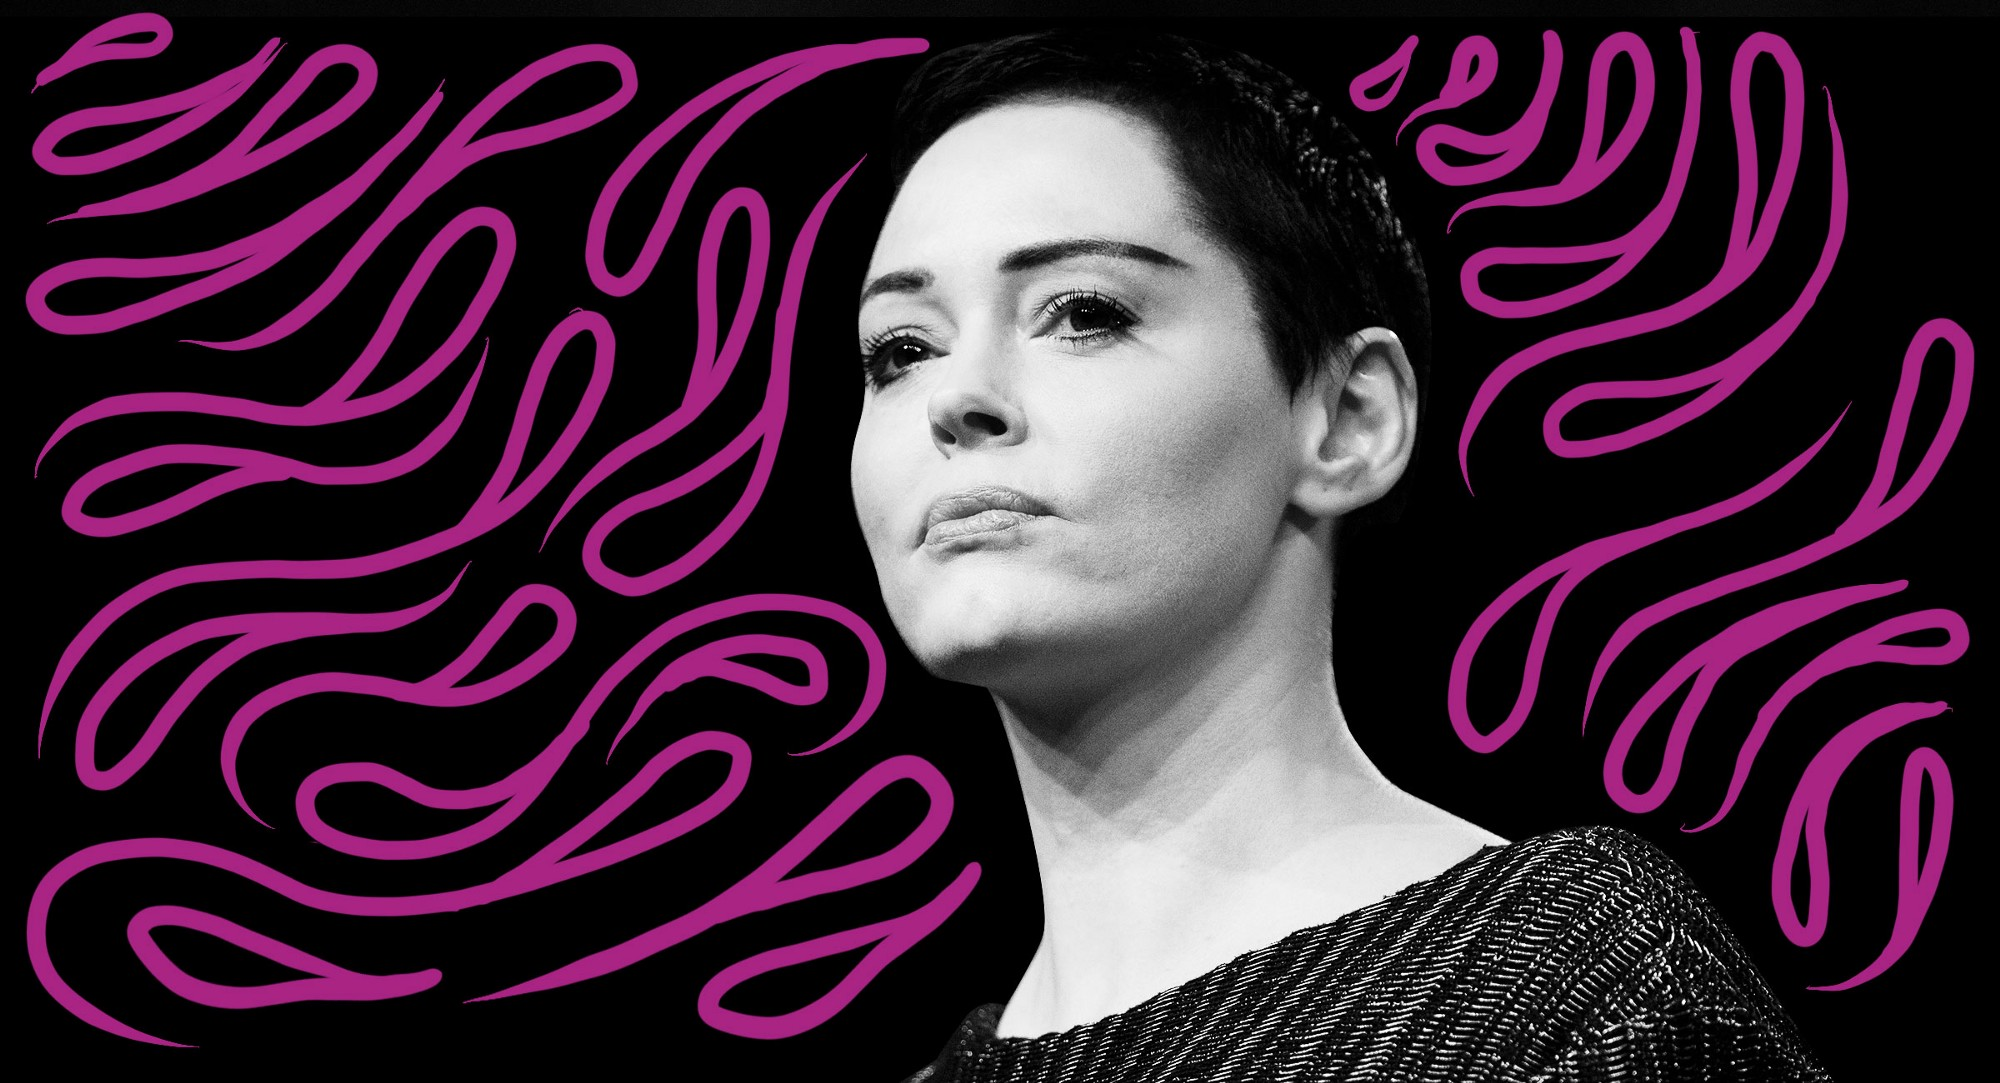 'Citizen Rose': 5 Things to Expect From Rose McGowan's New E! Docuseries